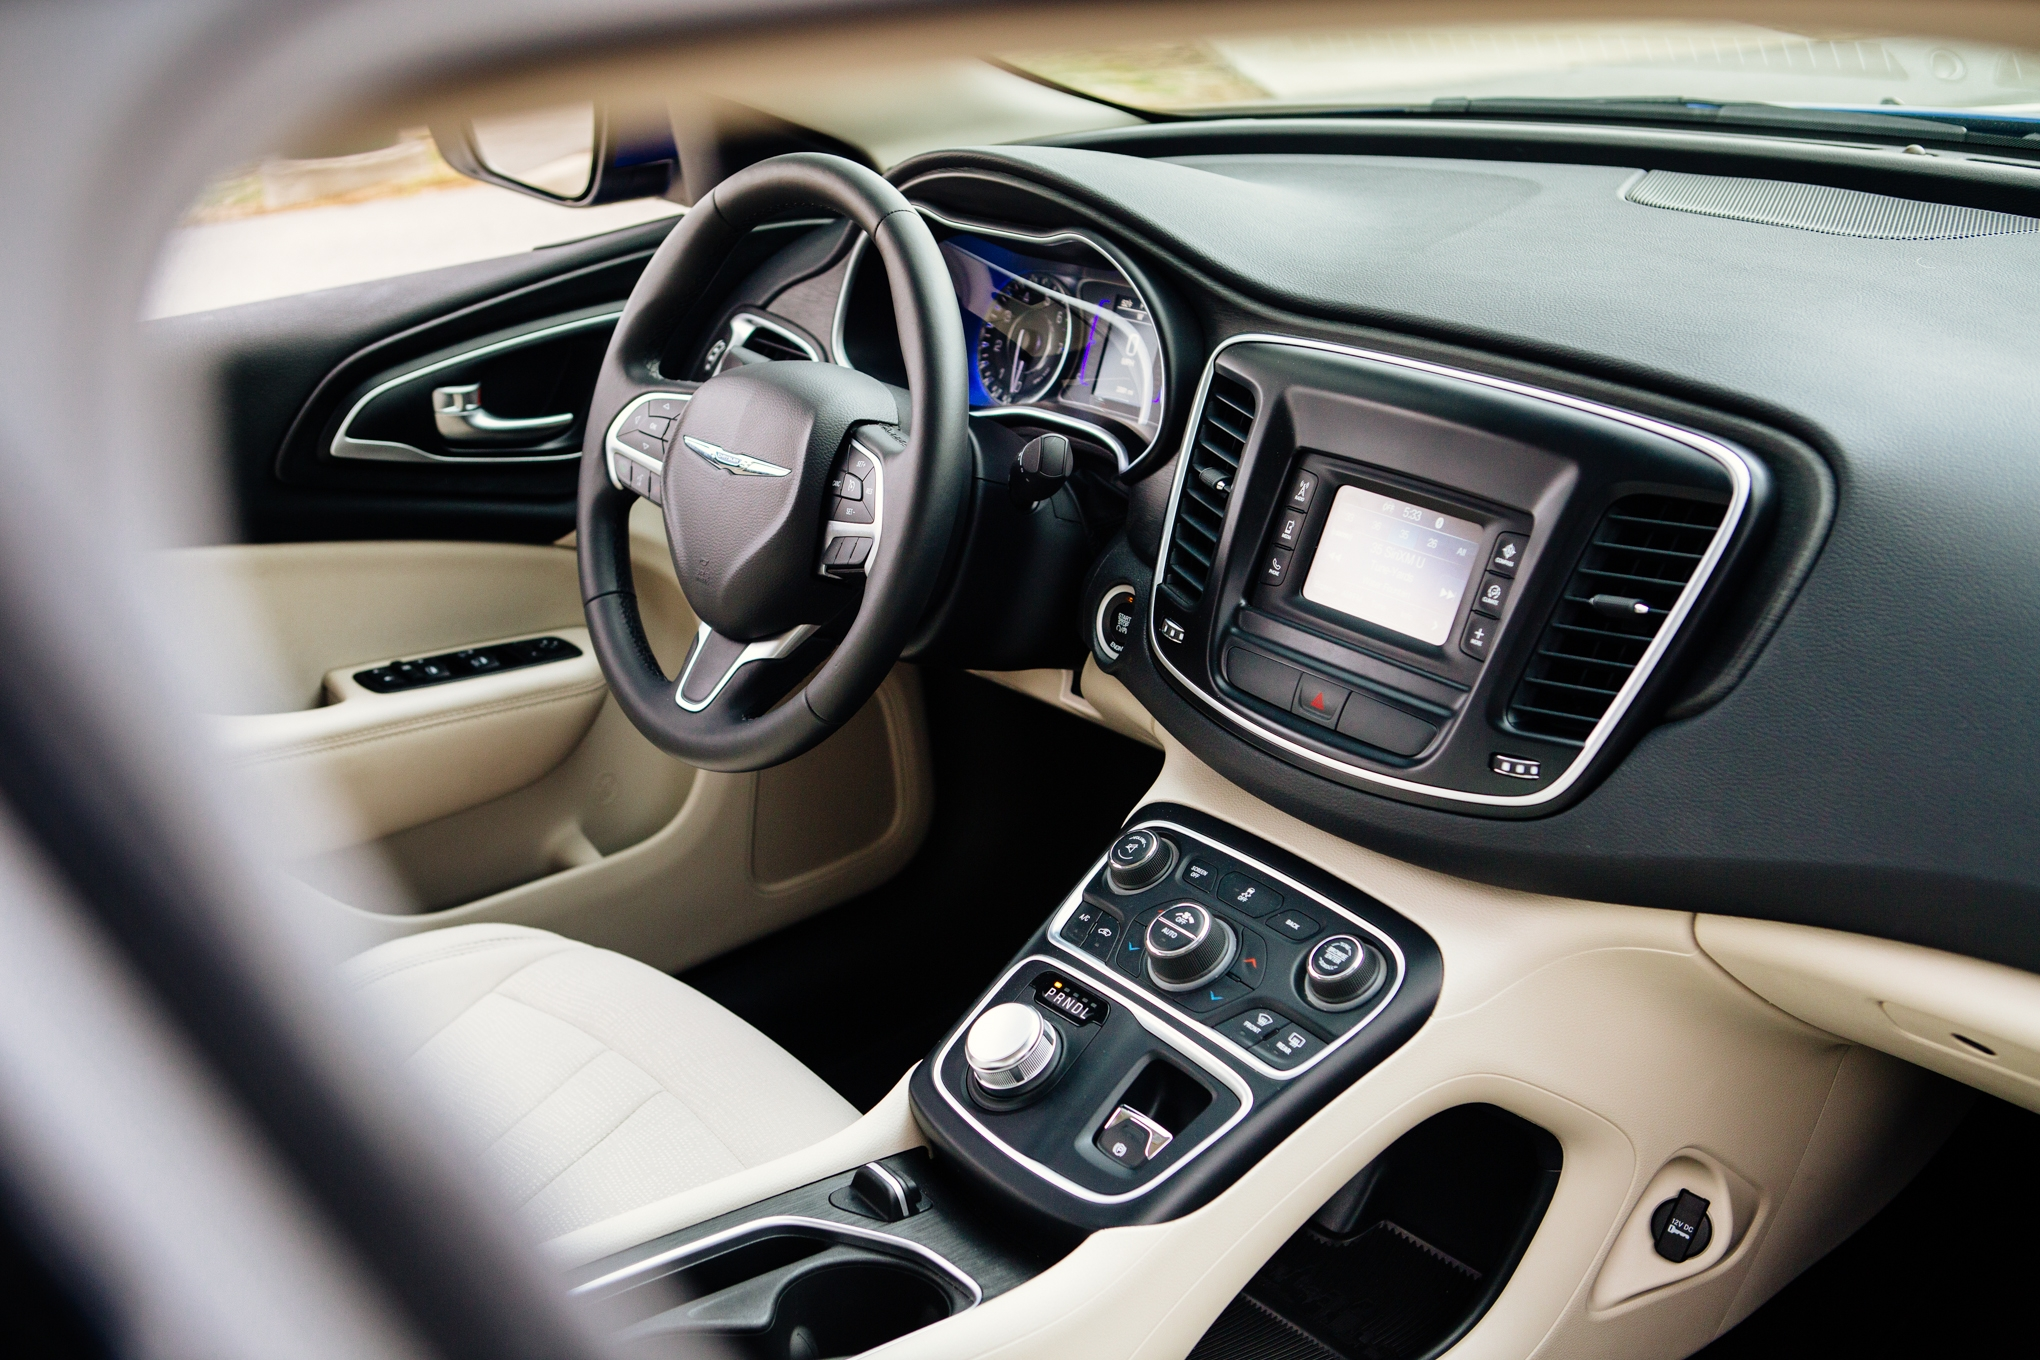 2015 Chrysler 200 Limited Interior, Image: FCA